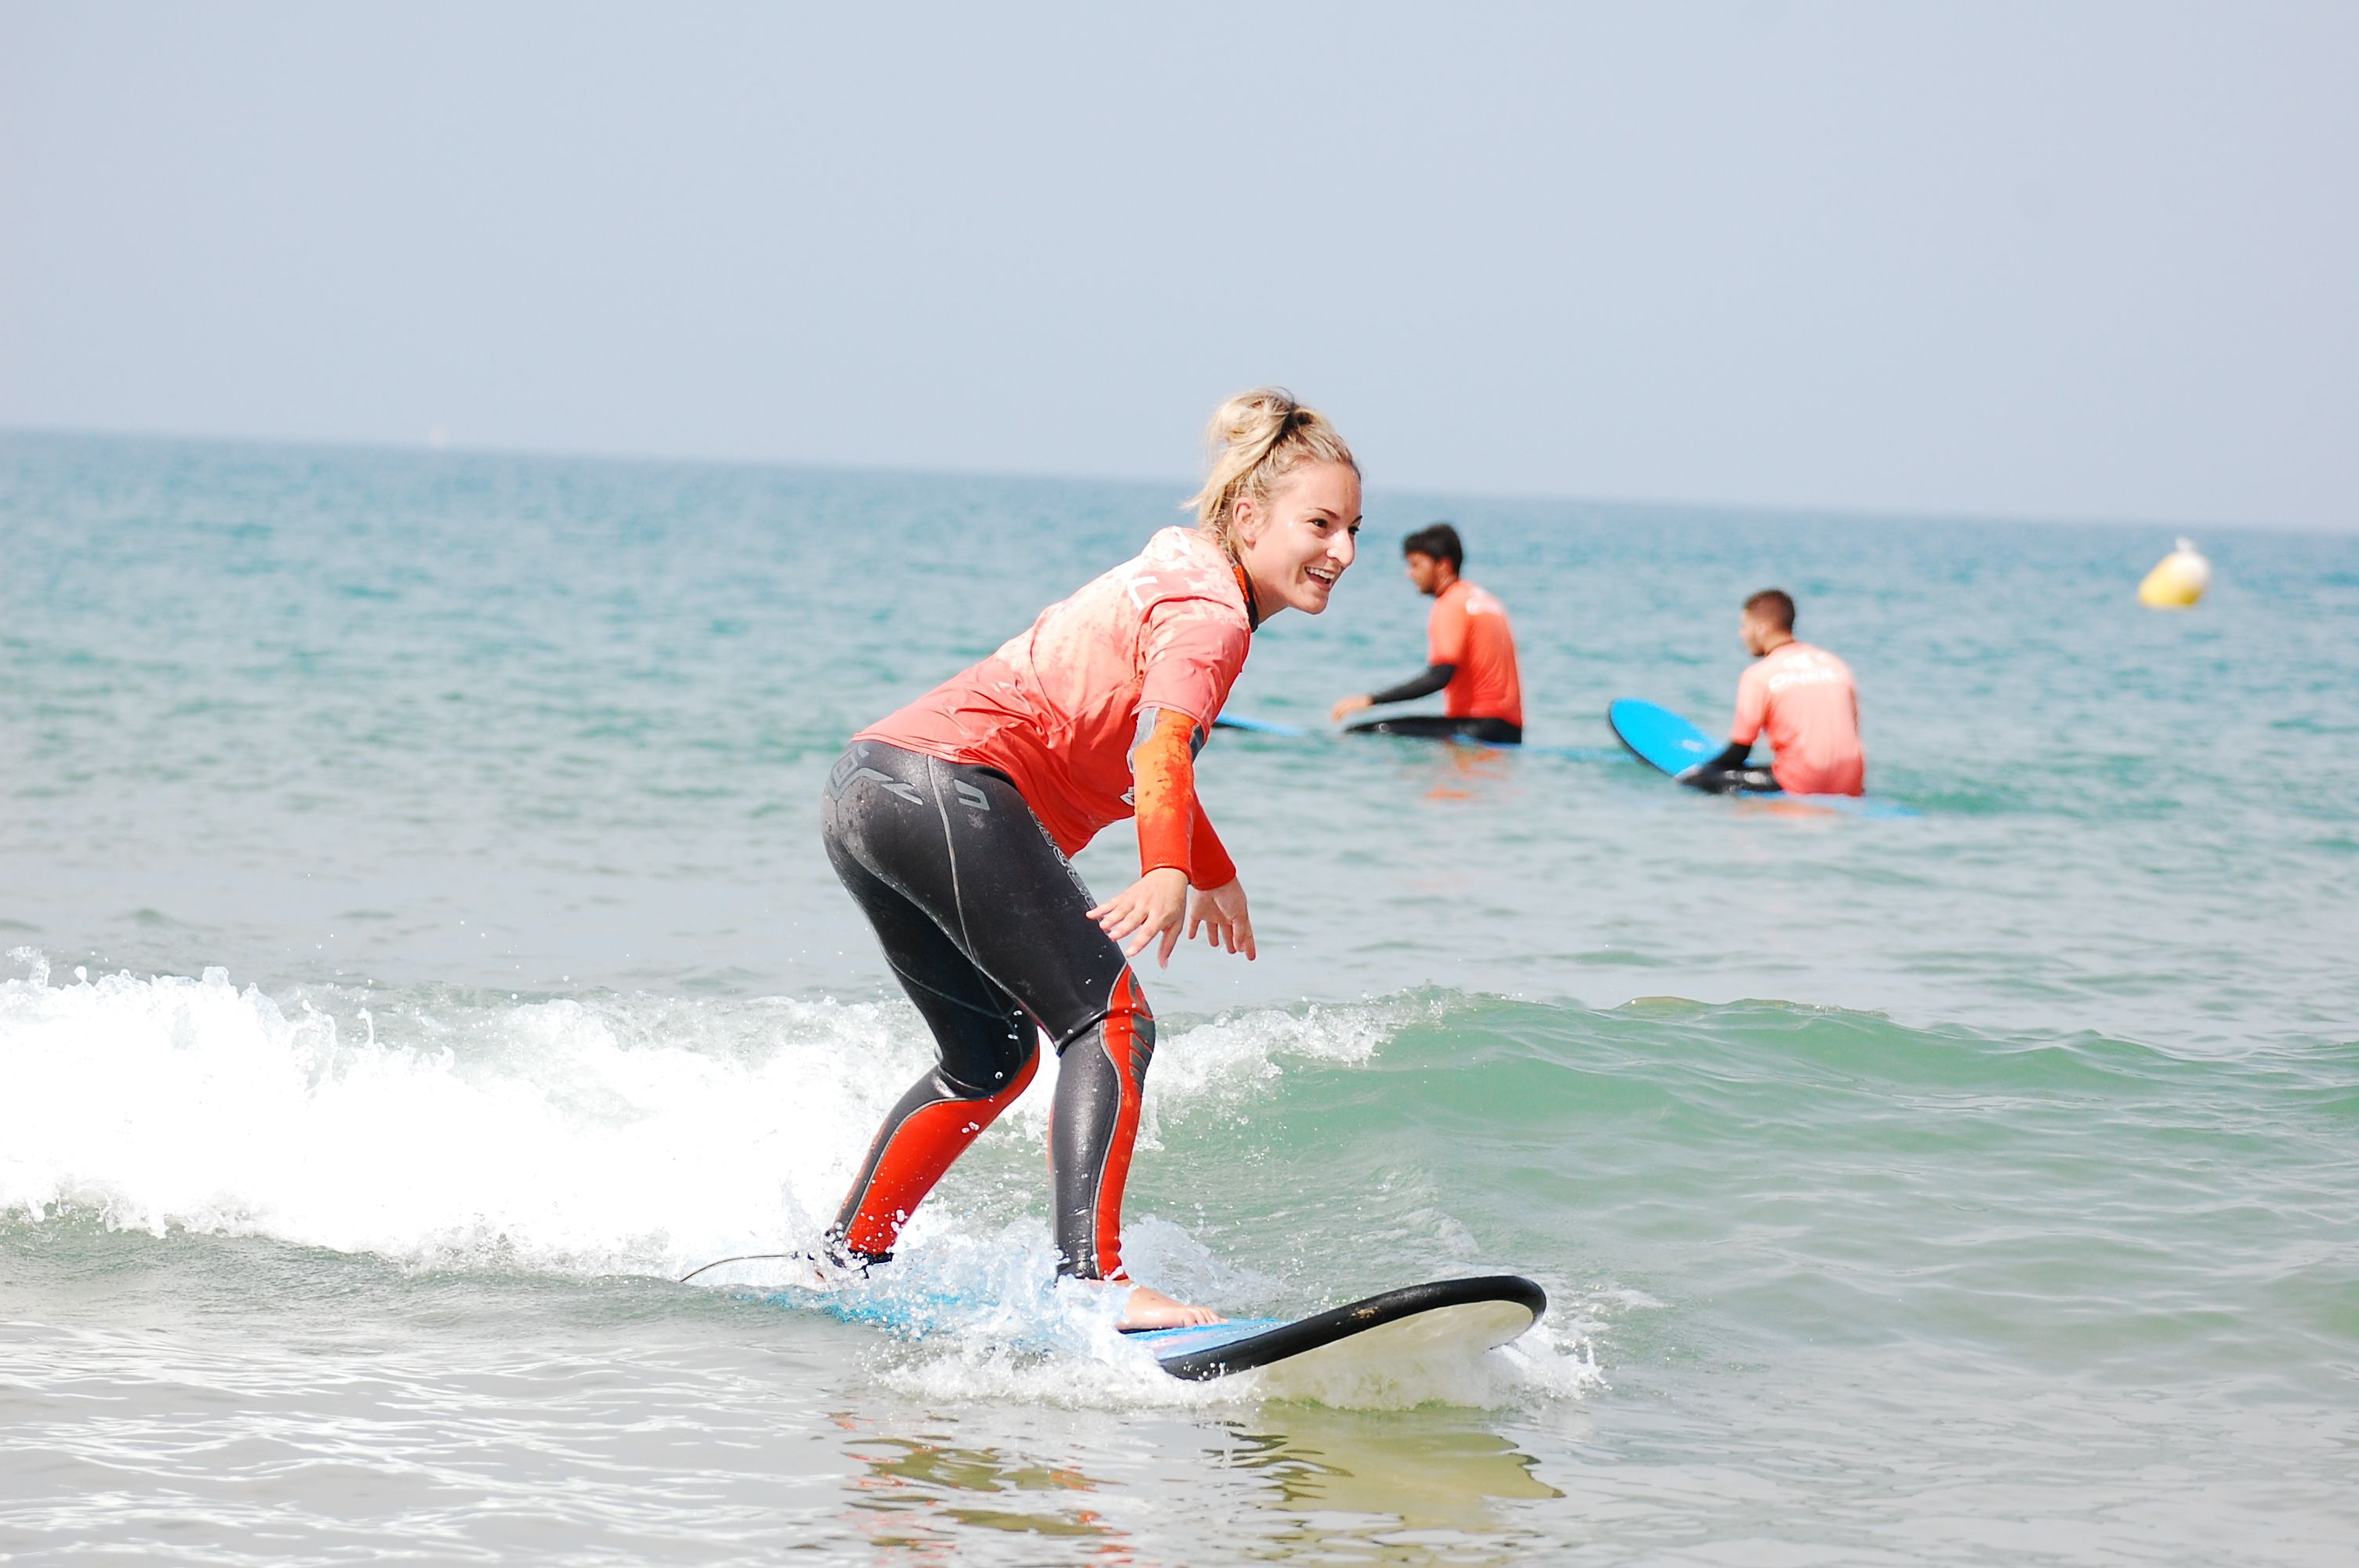 #GoLearnToSurf in Costa de la Luz, Spain. Repin if you remember your first time surfing!